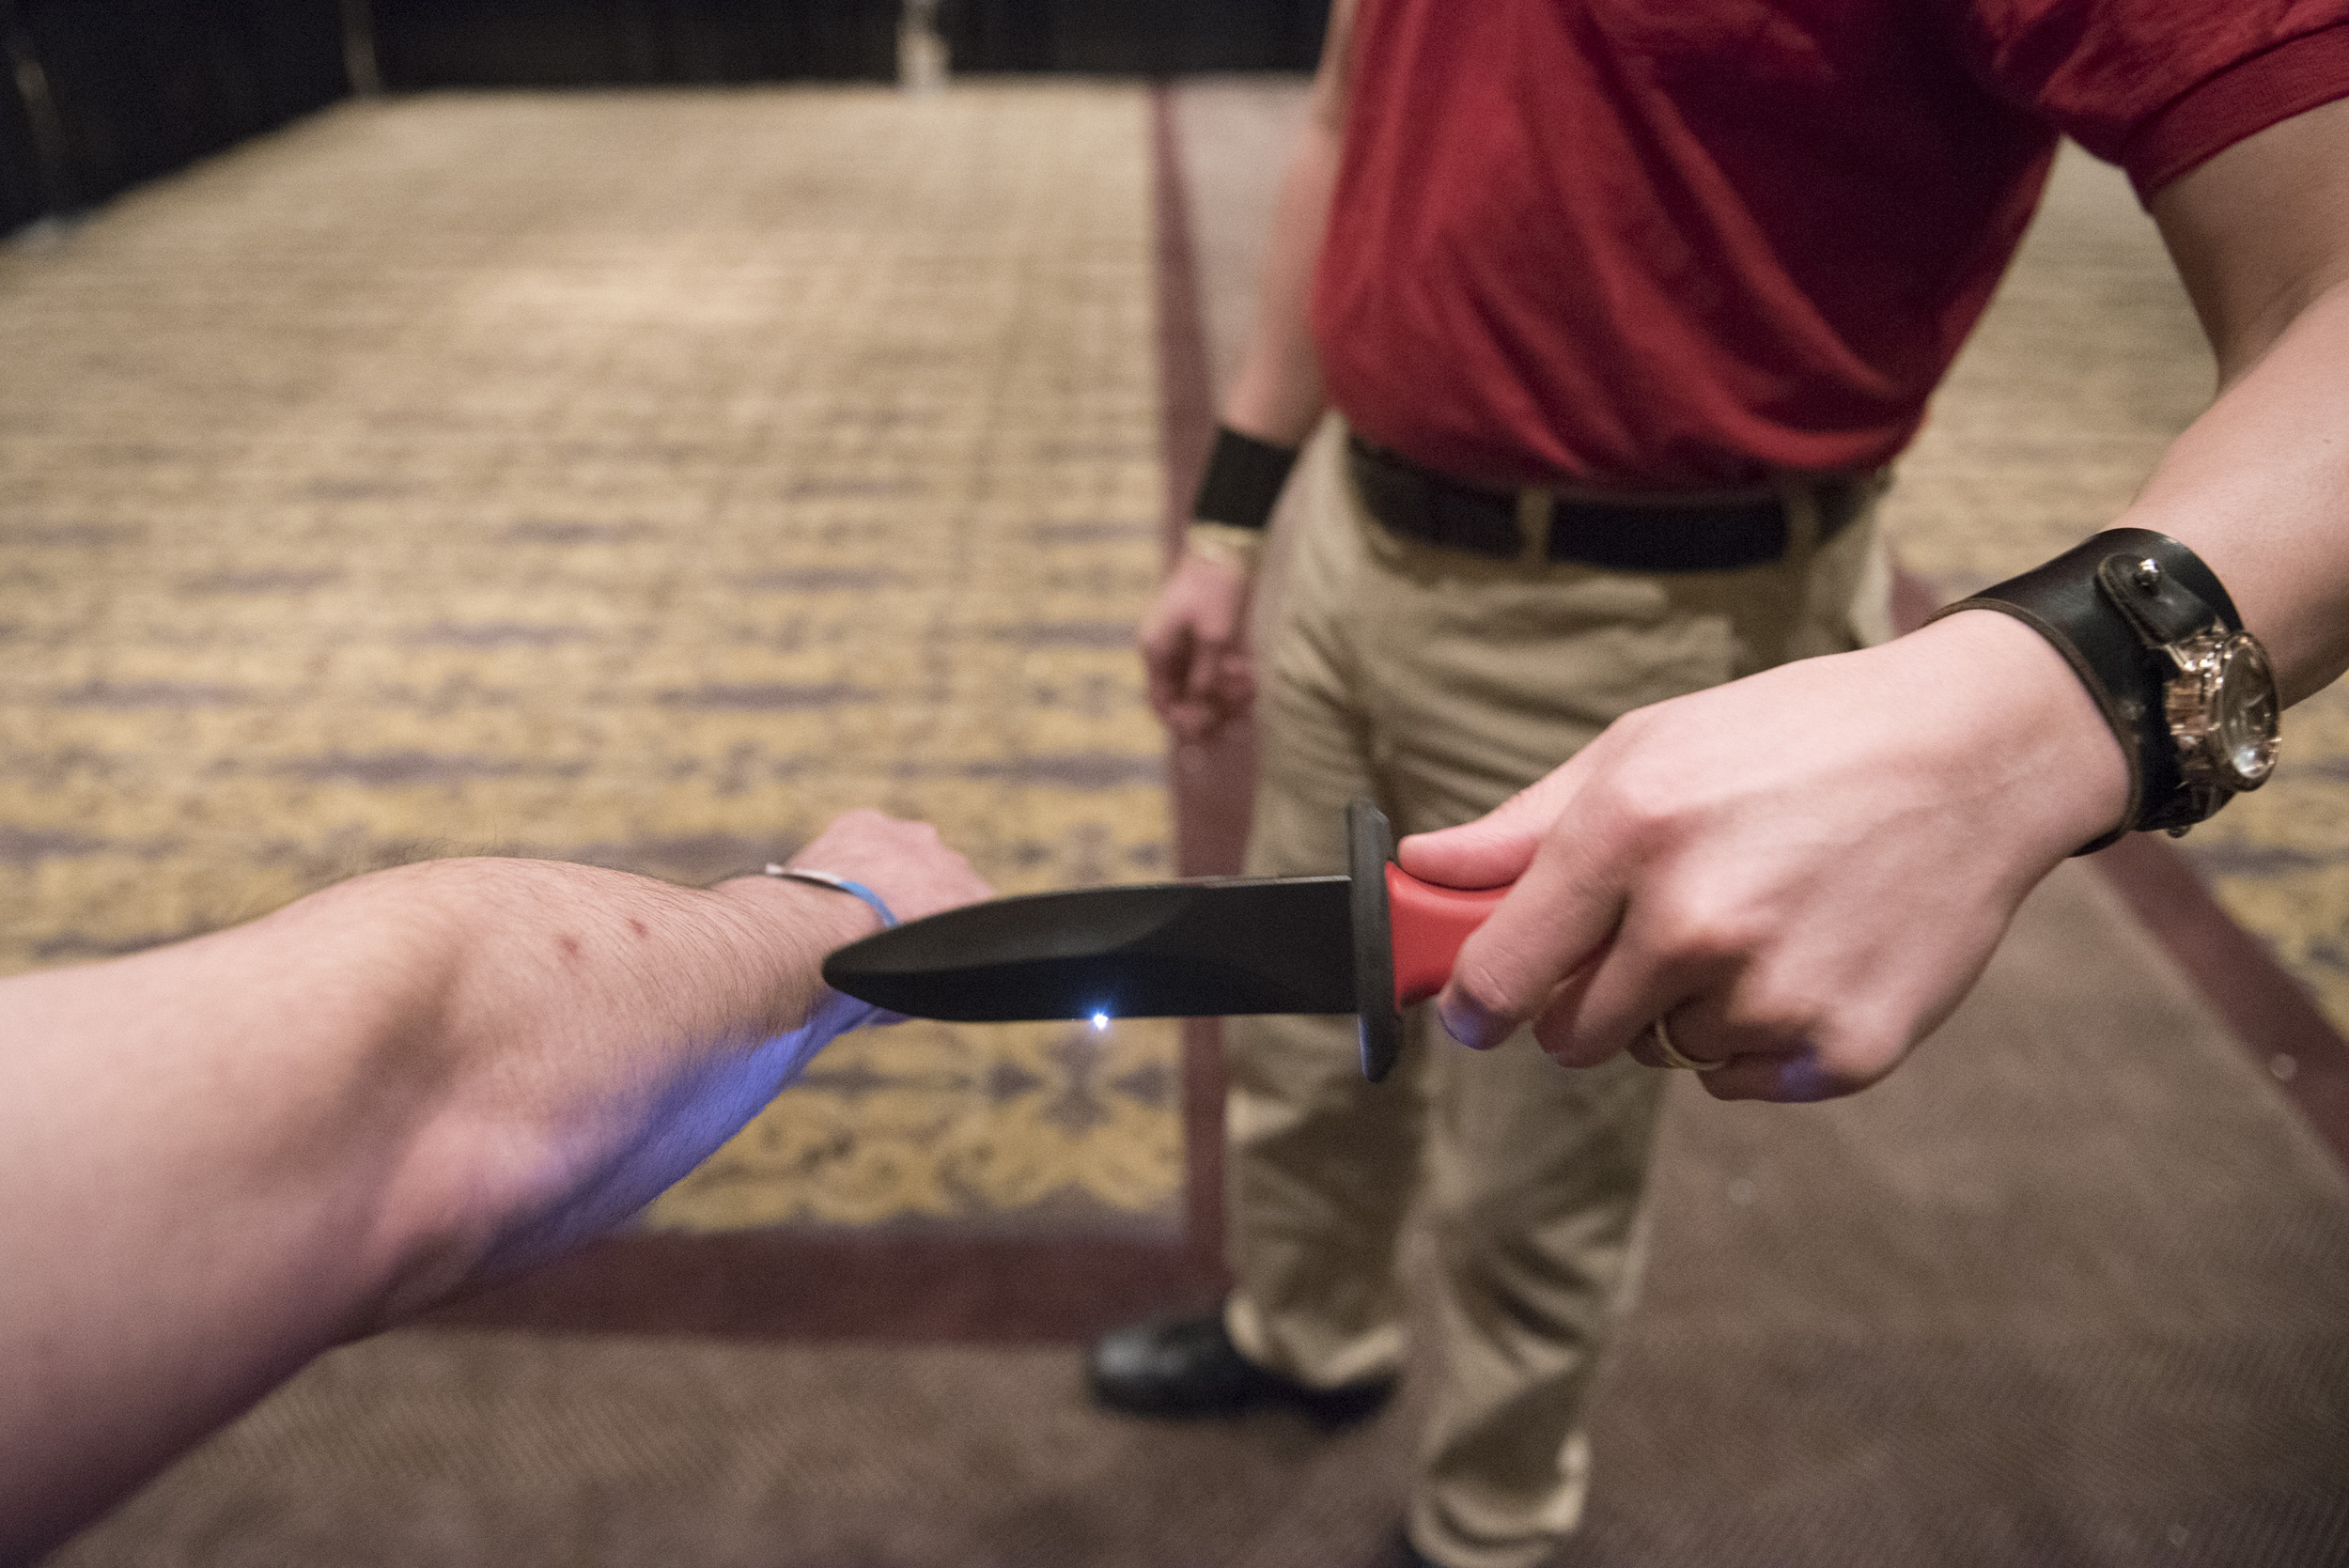 A Shocknife is demonstrated at CombatCon at The Palms Resort and Casino in Las Vegas, Saturday, June 27, 2015.(Jason Ogulnik/Las Vegas Review-Journal)